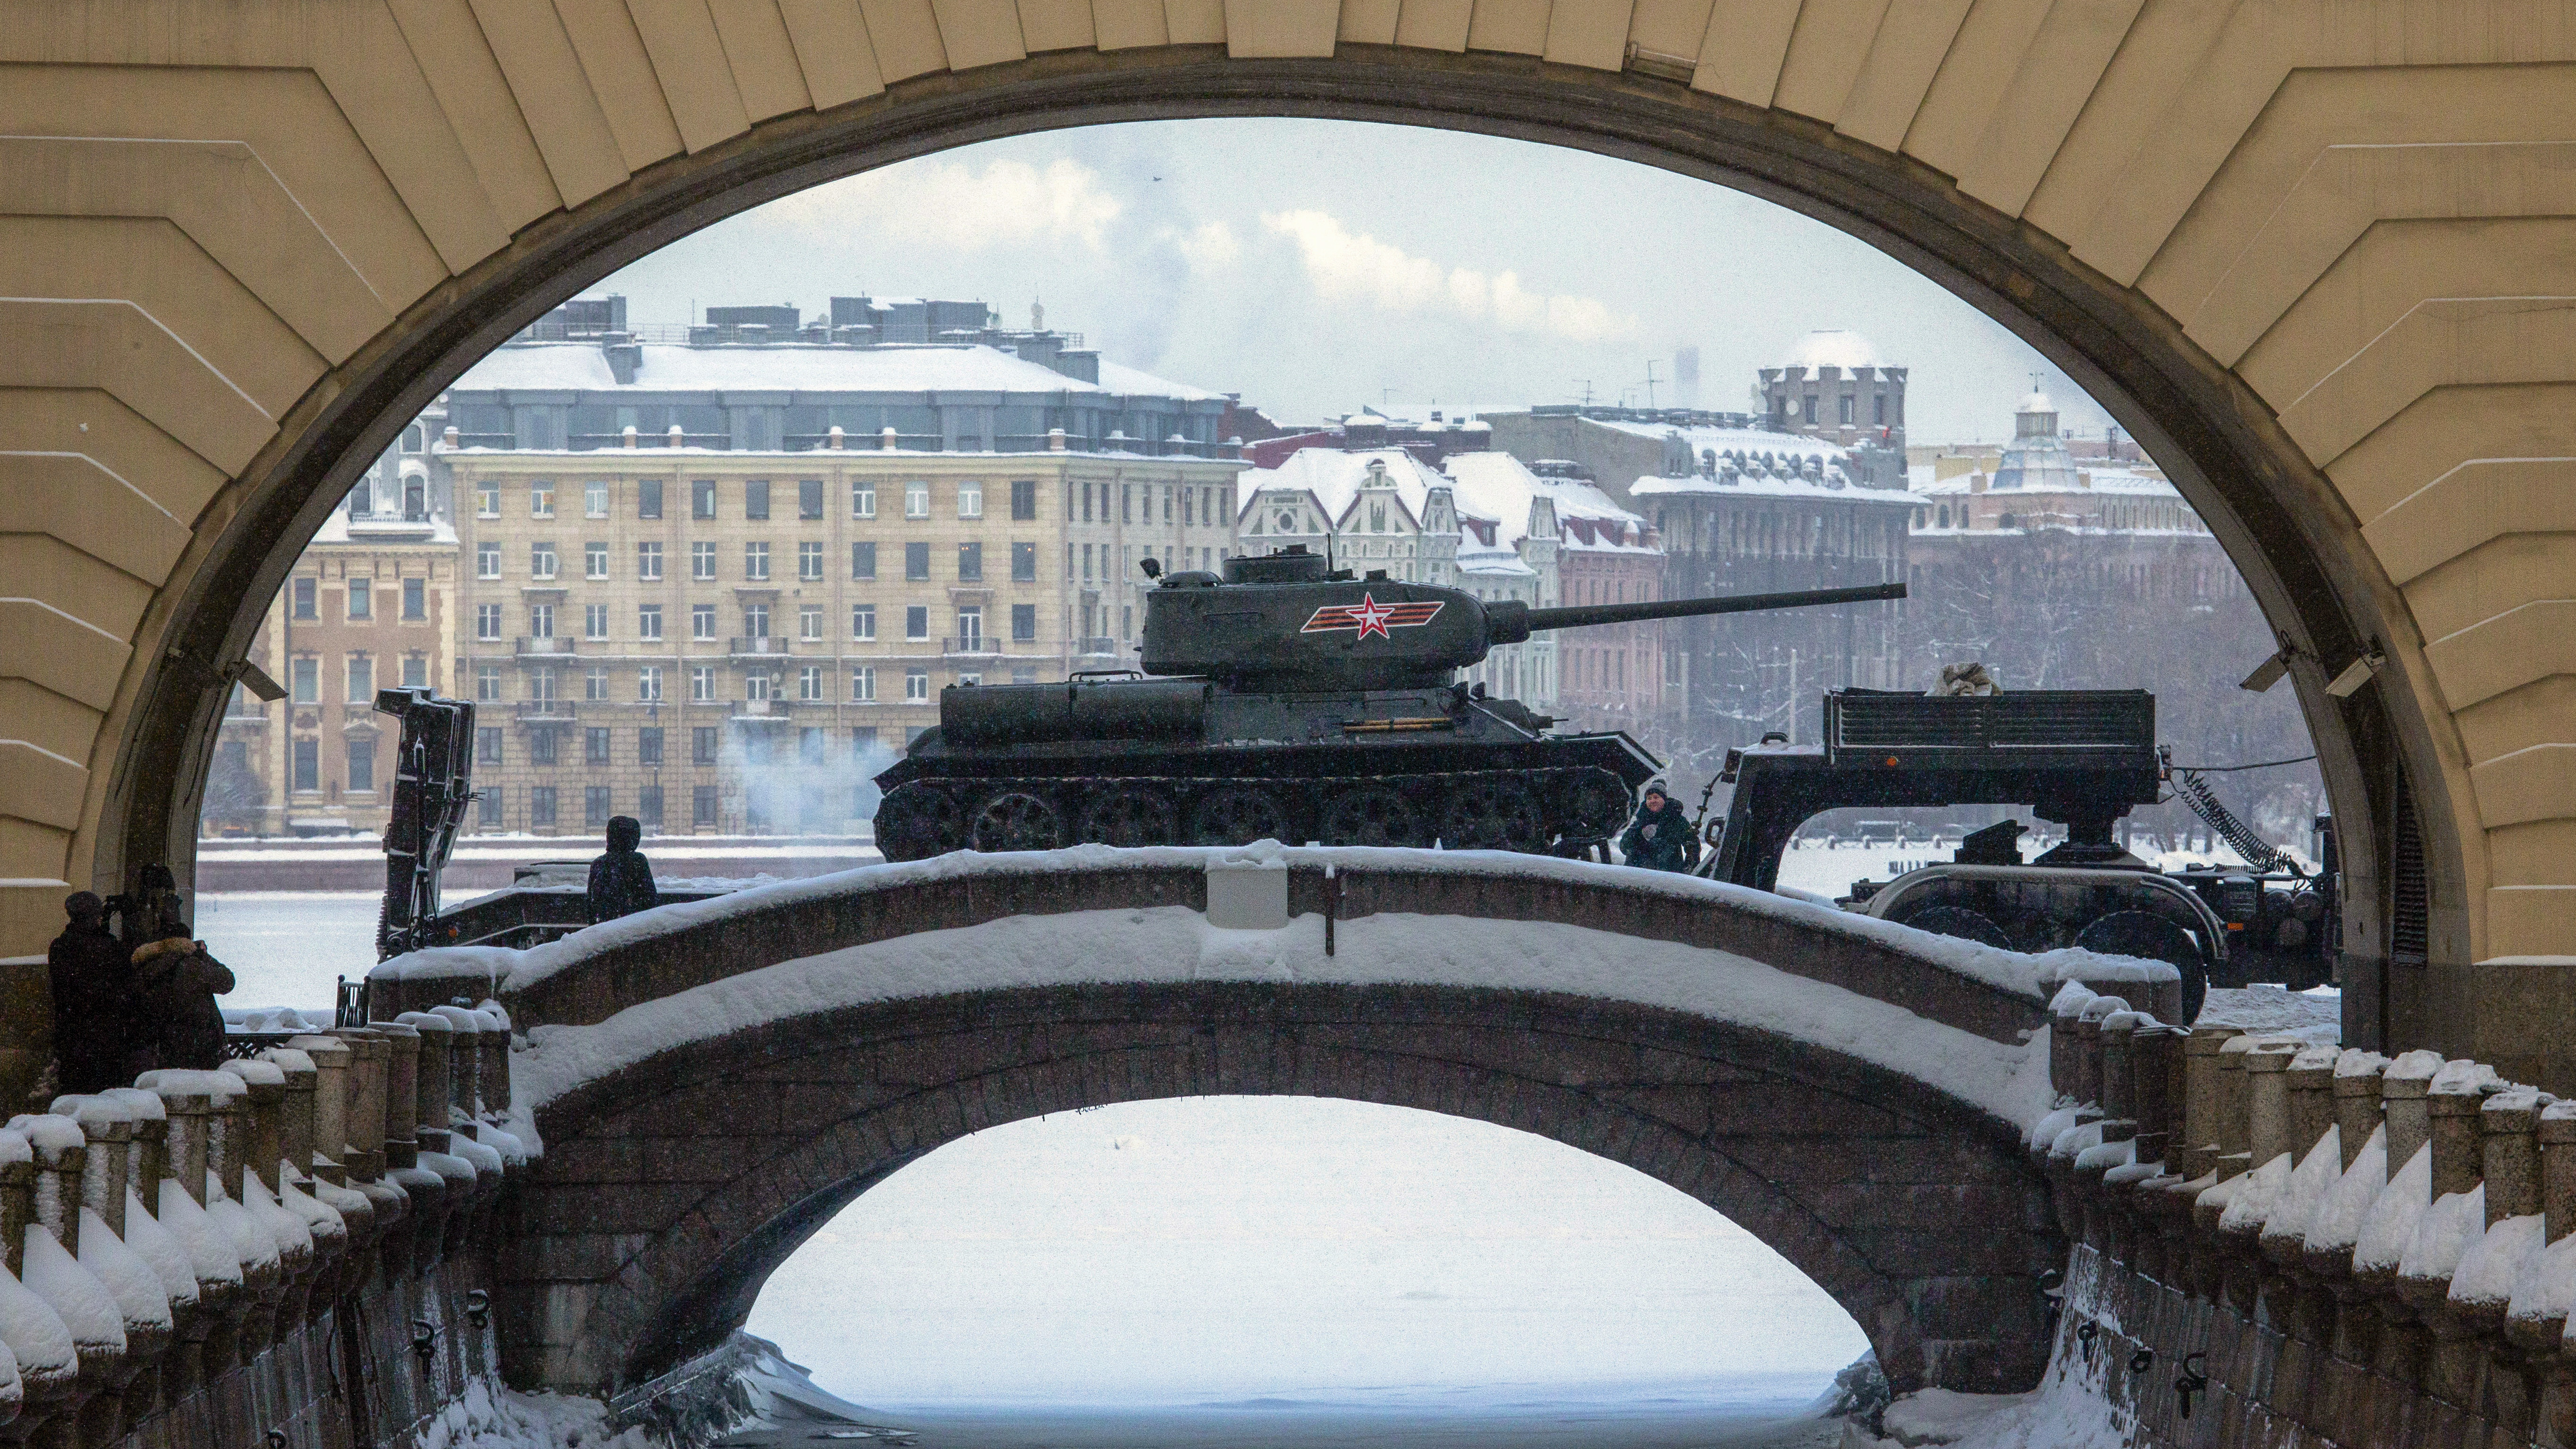 A Soviet World War II T-34 tank is transported by trucks after a rehearsal for the military parade which will take place at Dvortsovaya (Palace) Square on Jan. 27 to celebrate the 75th anniversary of the end of the Siege of Leningrad, in St.Petersburg, Russia, Thursday, Jan. 24, 2019. (AP Photo/Dmitri Lovetsky)